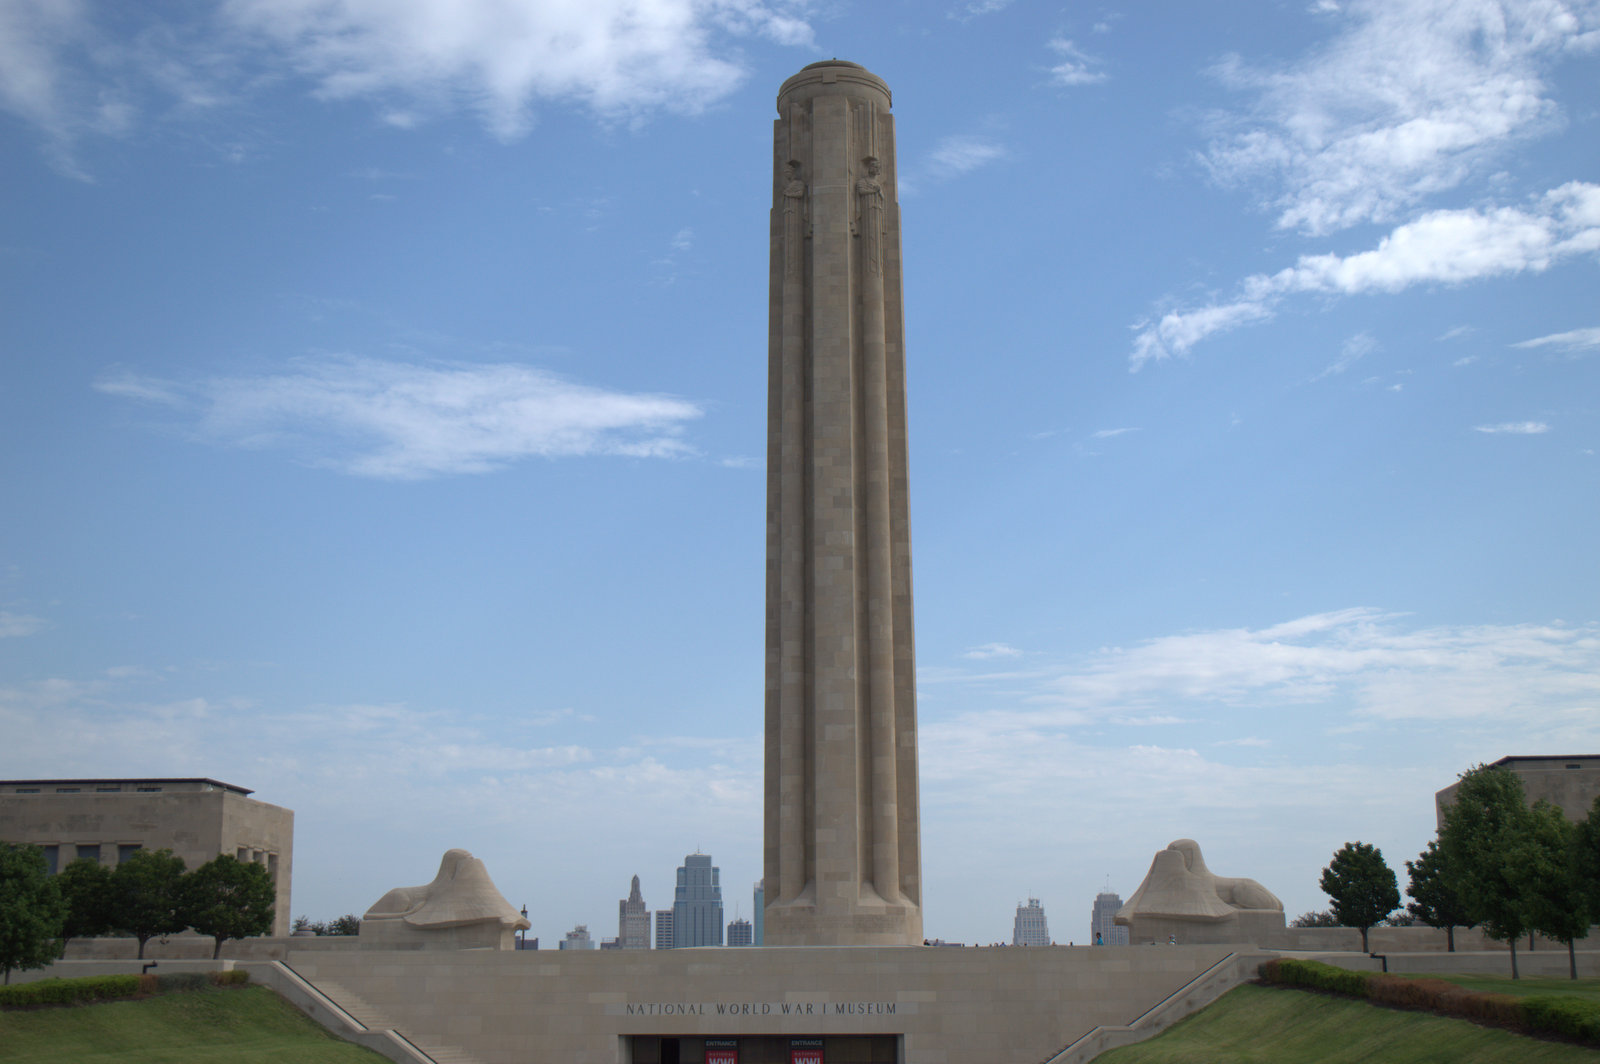 Liberty Memorial and WWI Museum